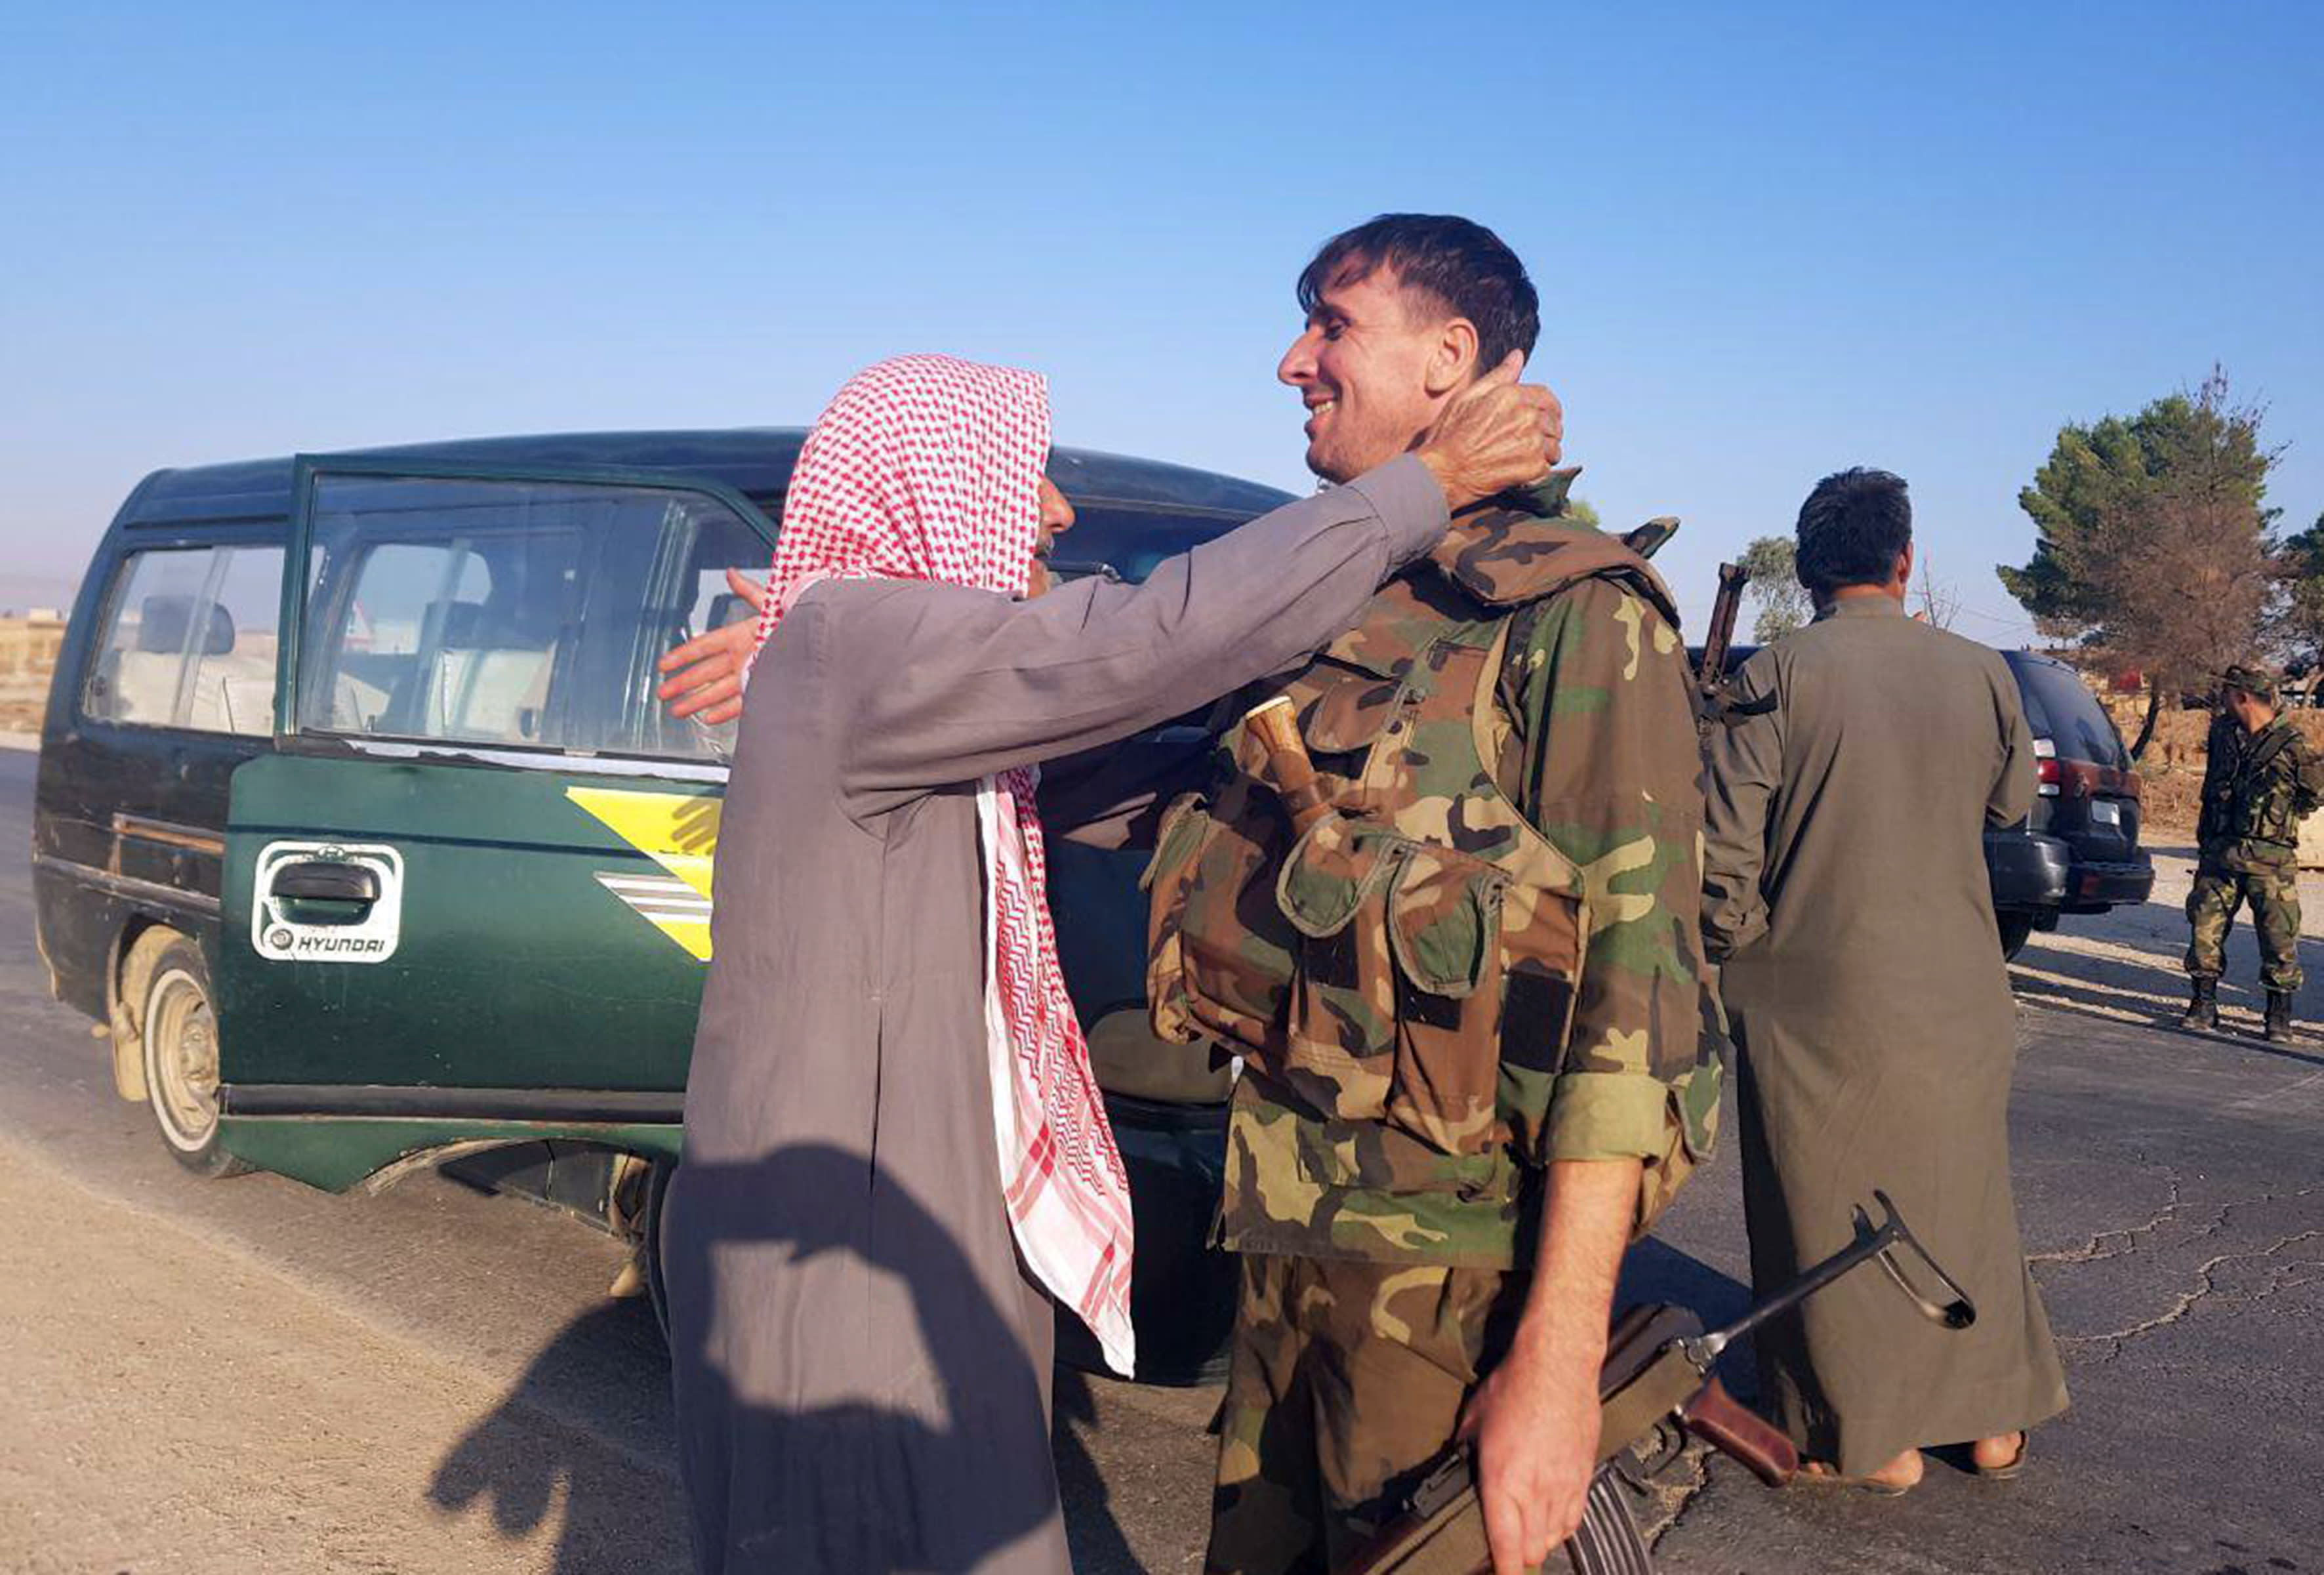 In this photo released by the Syrian official news agency SANA, a resident hugs a Syrian soldier shortly after Syrian troops entered the northern town of Tal Tamr, Monday, Oct 14, 2019. The move toward Tal Tamr came a day after Syria's Kurds said Syrian government forces agreed to help them fend off Turkey's invasion — a major shift in alliances that came after President Donald Trump ordered all U.S. troops withdrawn from the northern border area amid the rapidly deepening chaos. (SANA via AP)